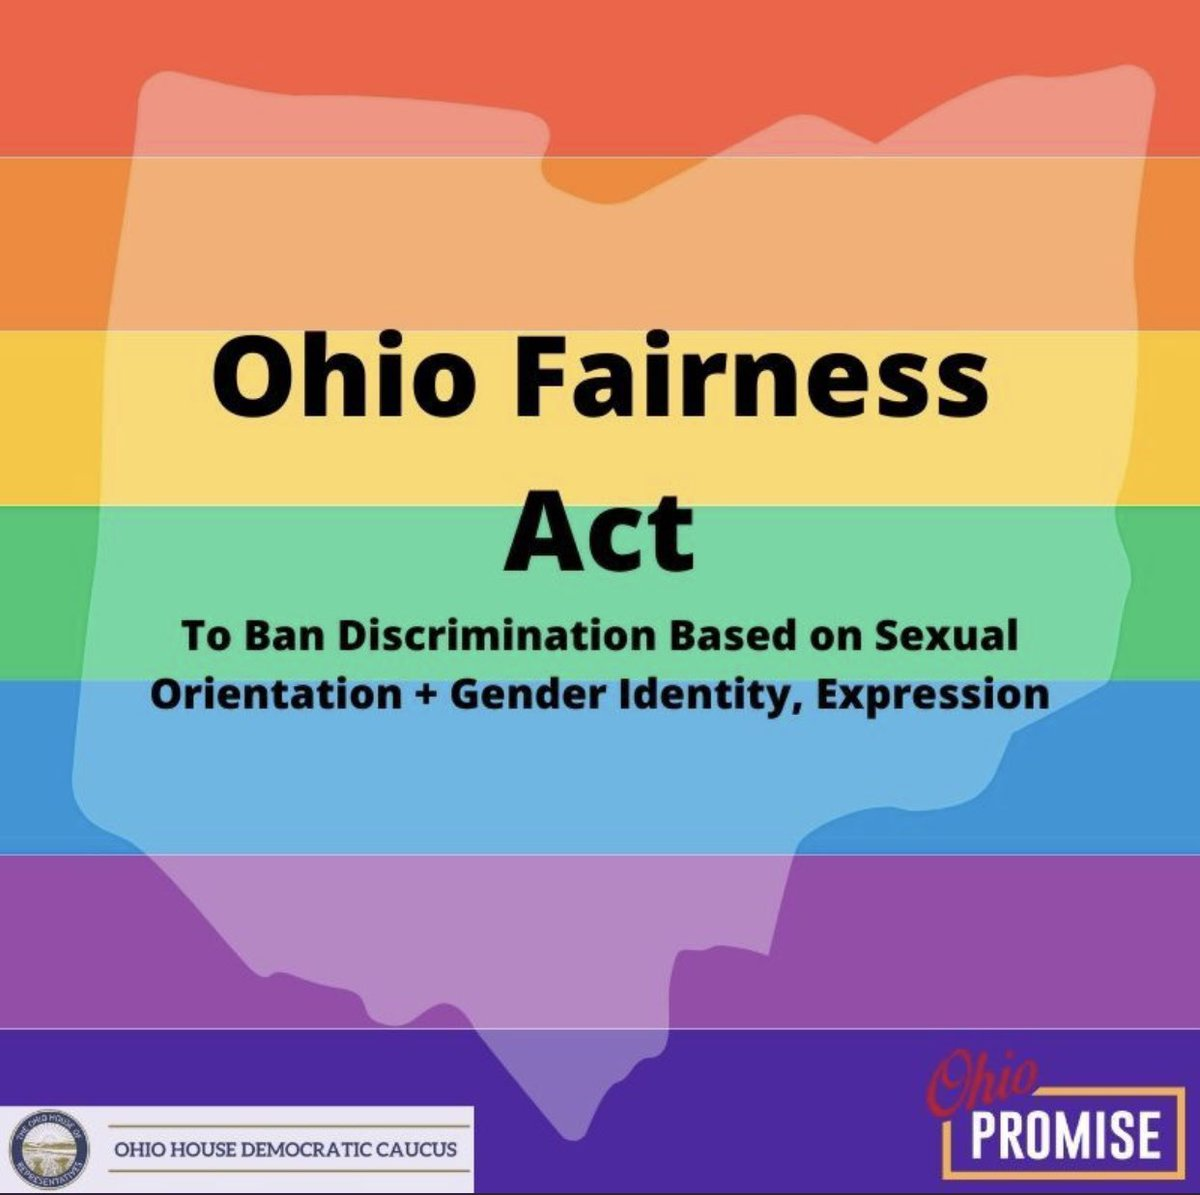 Right now, the Ohio Fairness Act is having its 3rd hearing.  As of today, it's still legal in Ohio to be fired from your job, kicked out of your home or denied services if you're #LGBTQ.   That's unacceptable. It's time to protect #LGBTQ Ohioans & pass the Ohio Fairness Act now. https://t.co/NNgLzVYCfI